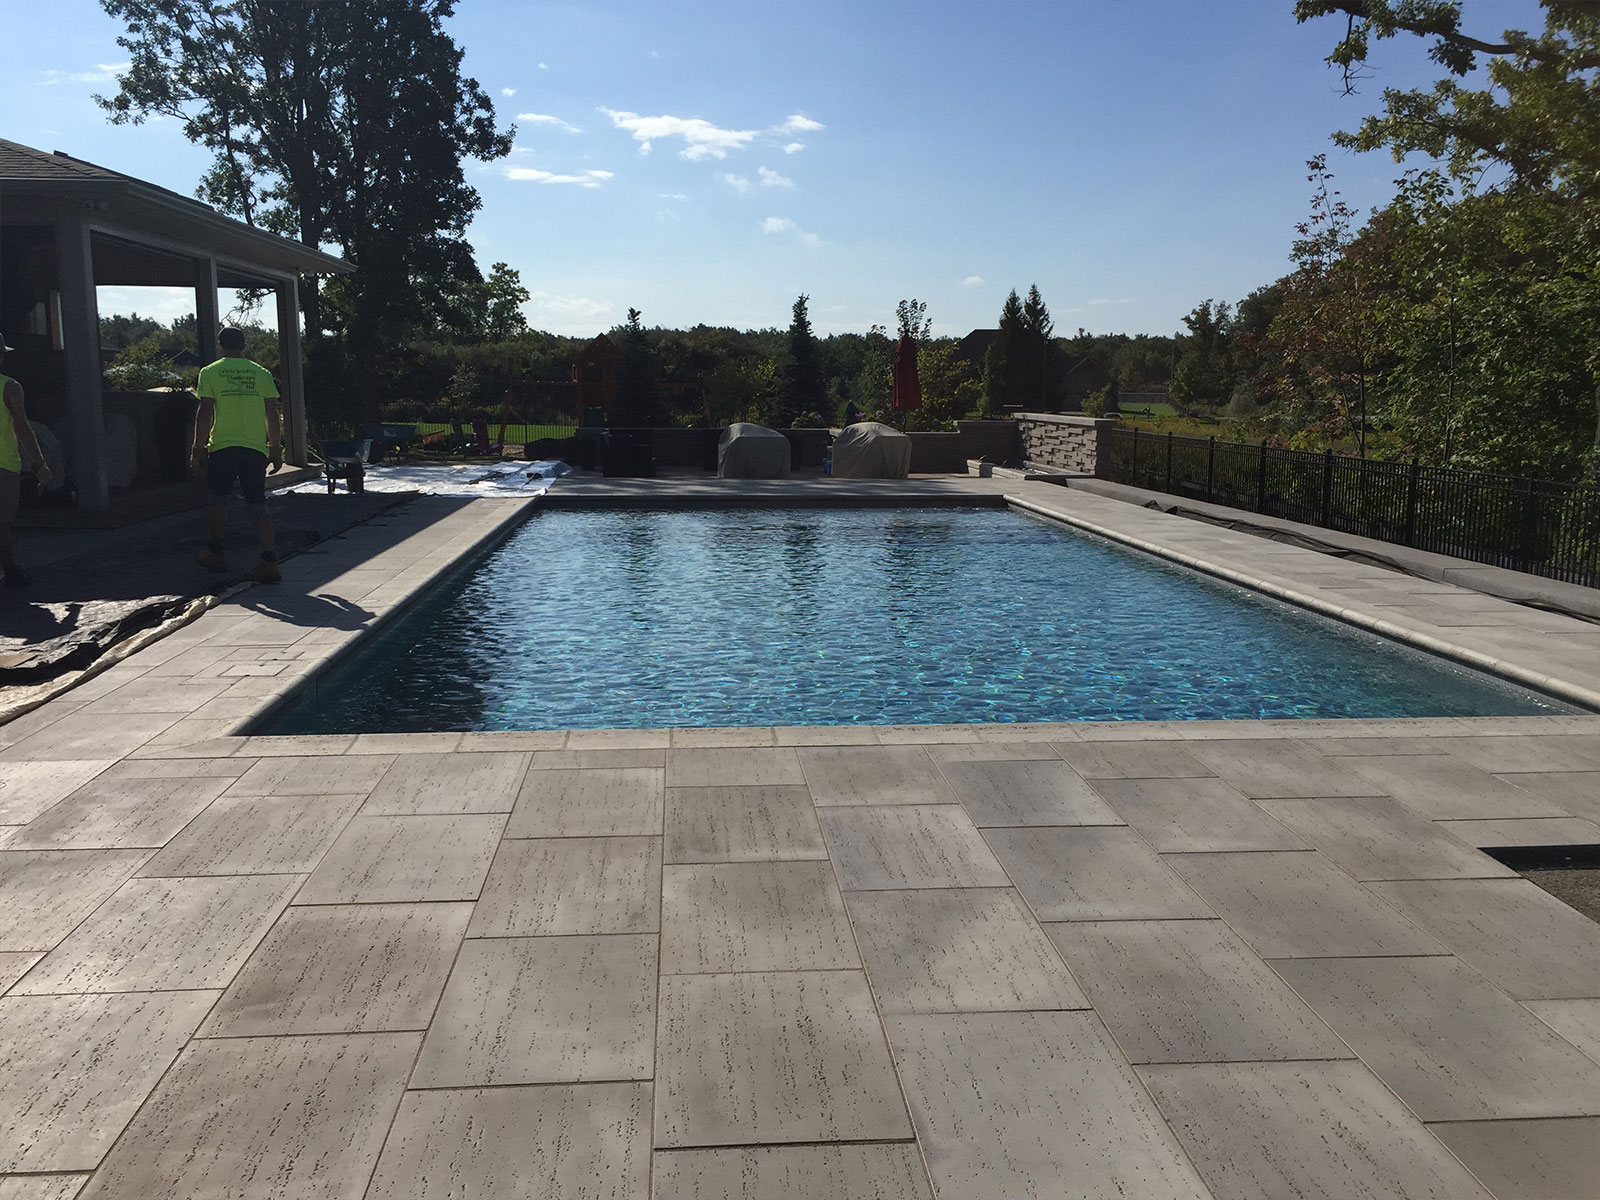 Tiled Concrete Pool - Patio Build